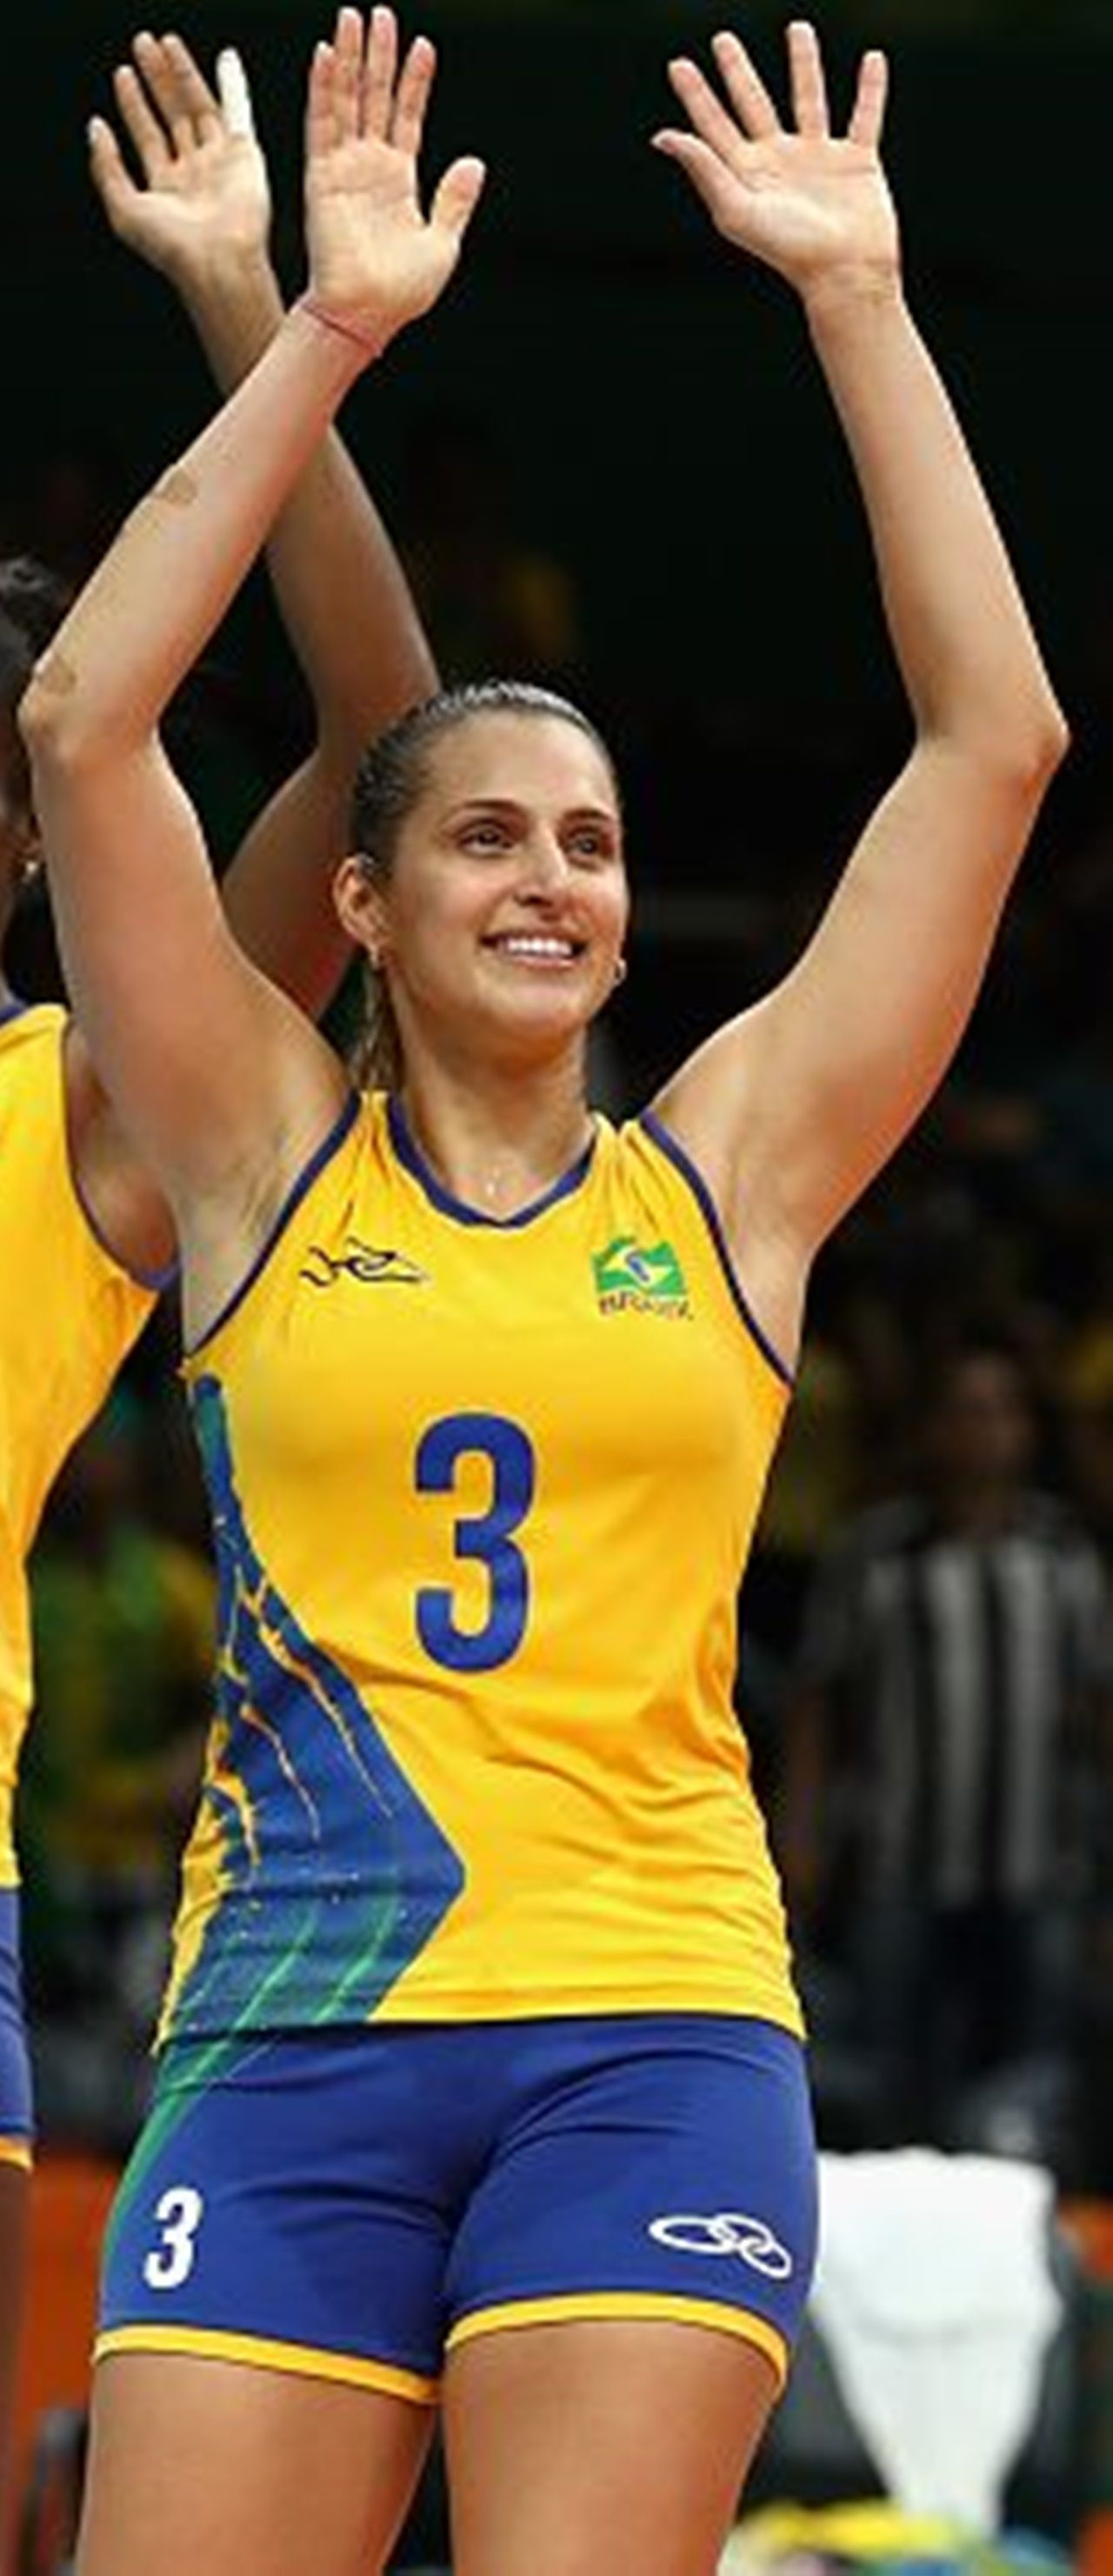 Pin By Cris 39 On Tenis Female Volleyball Players Women Volleyball Volleyball Players